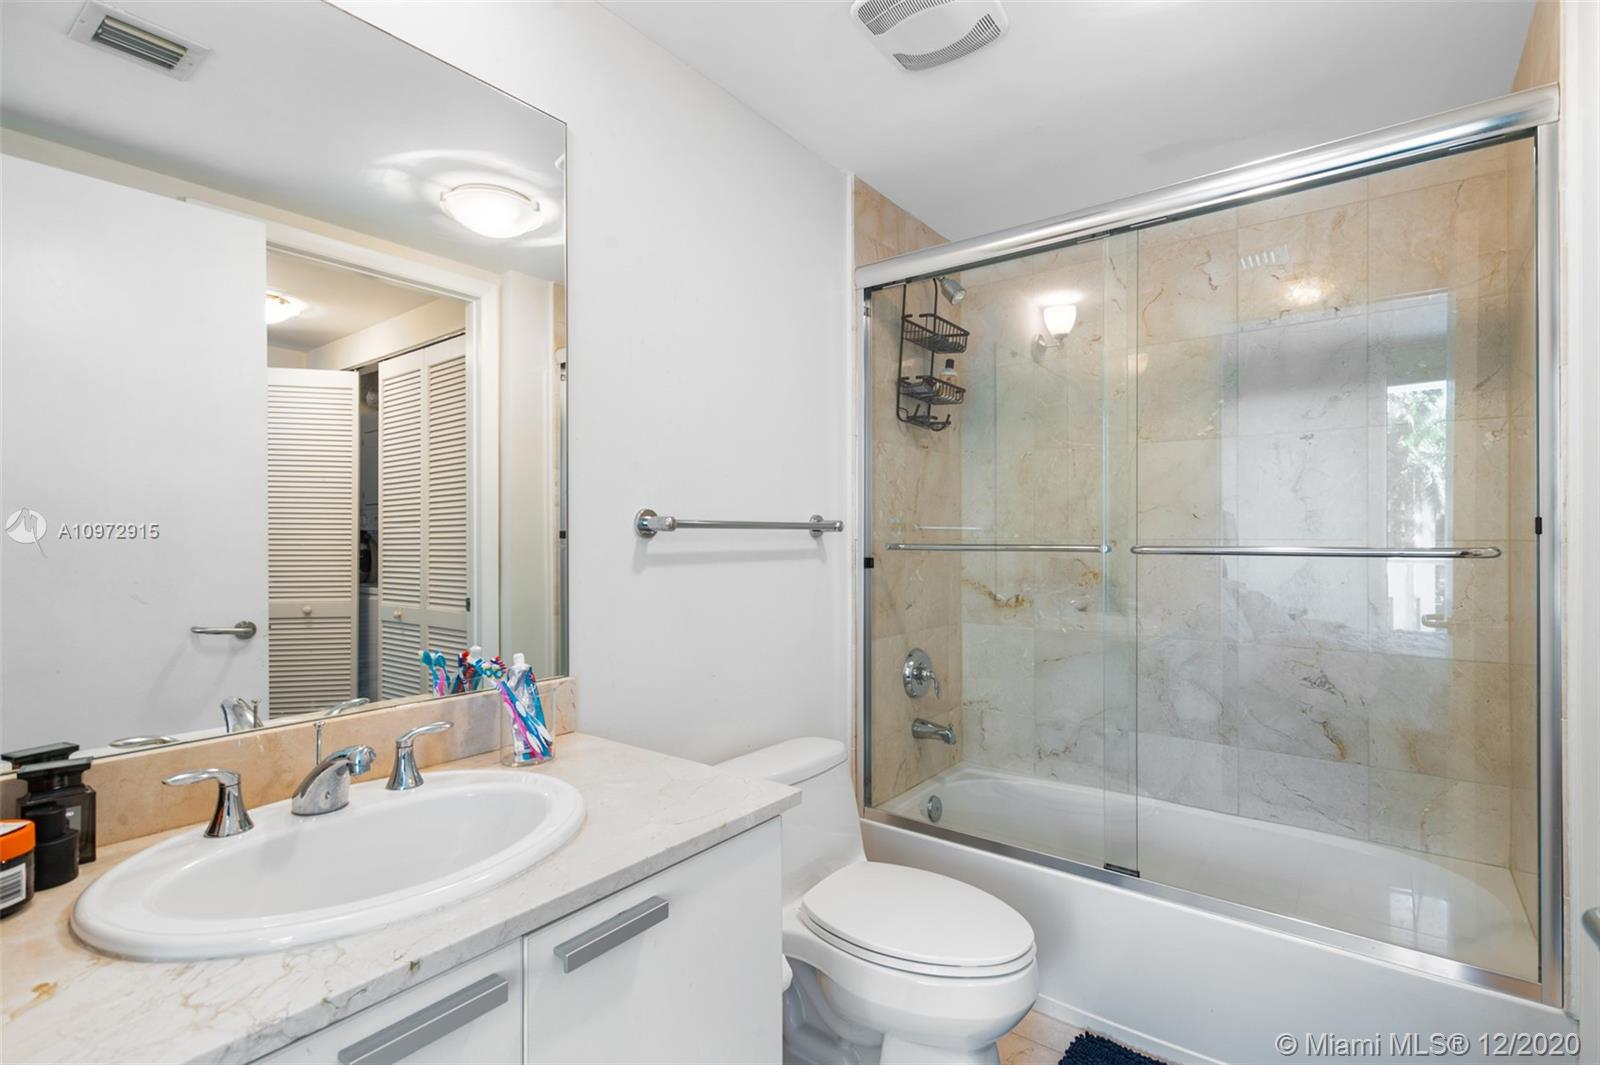 Photo of 3131 188th St #2-307, Aventura, Florida, 33180 - Bathroom